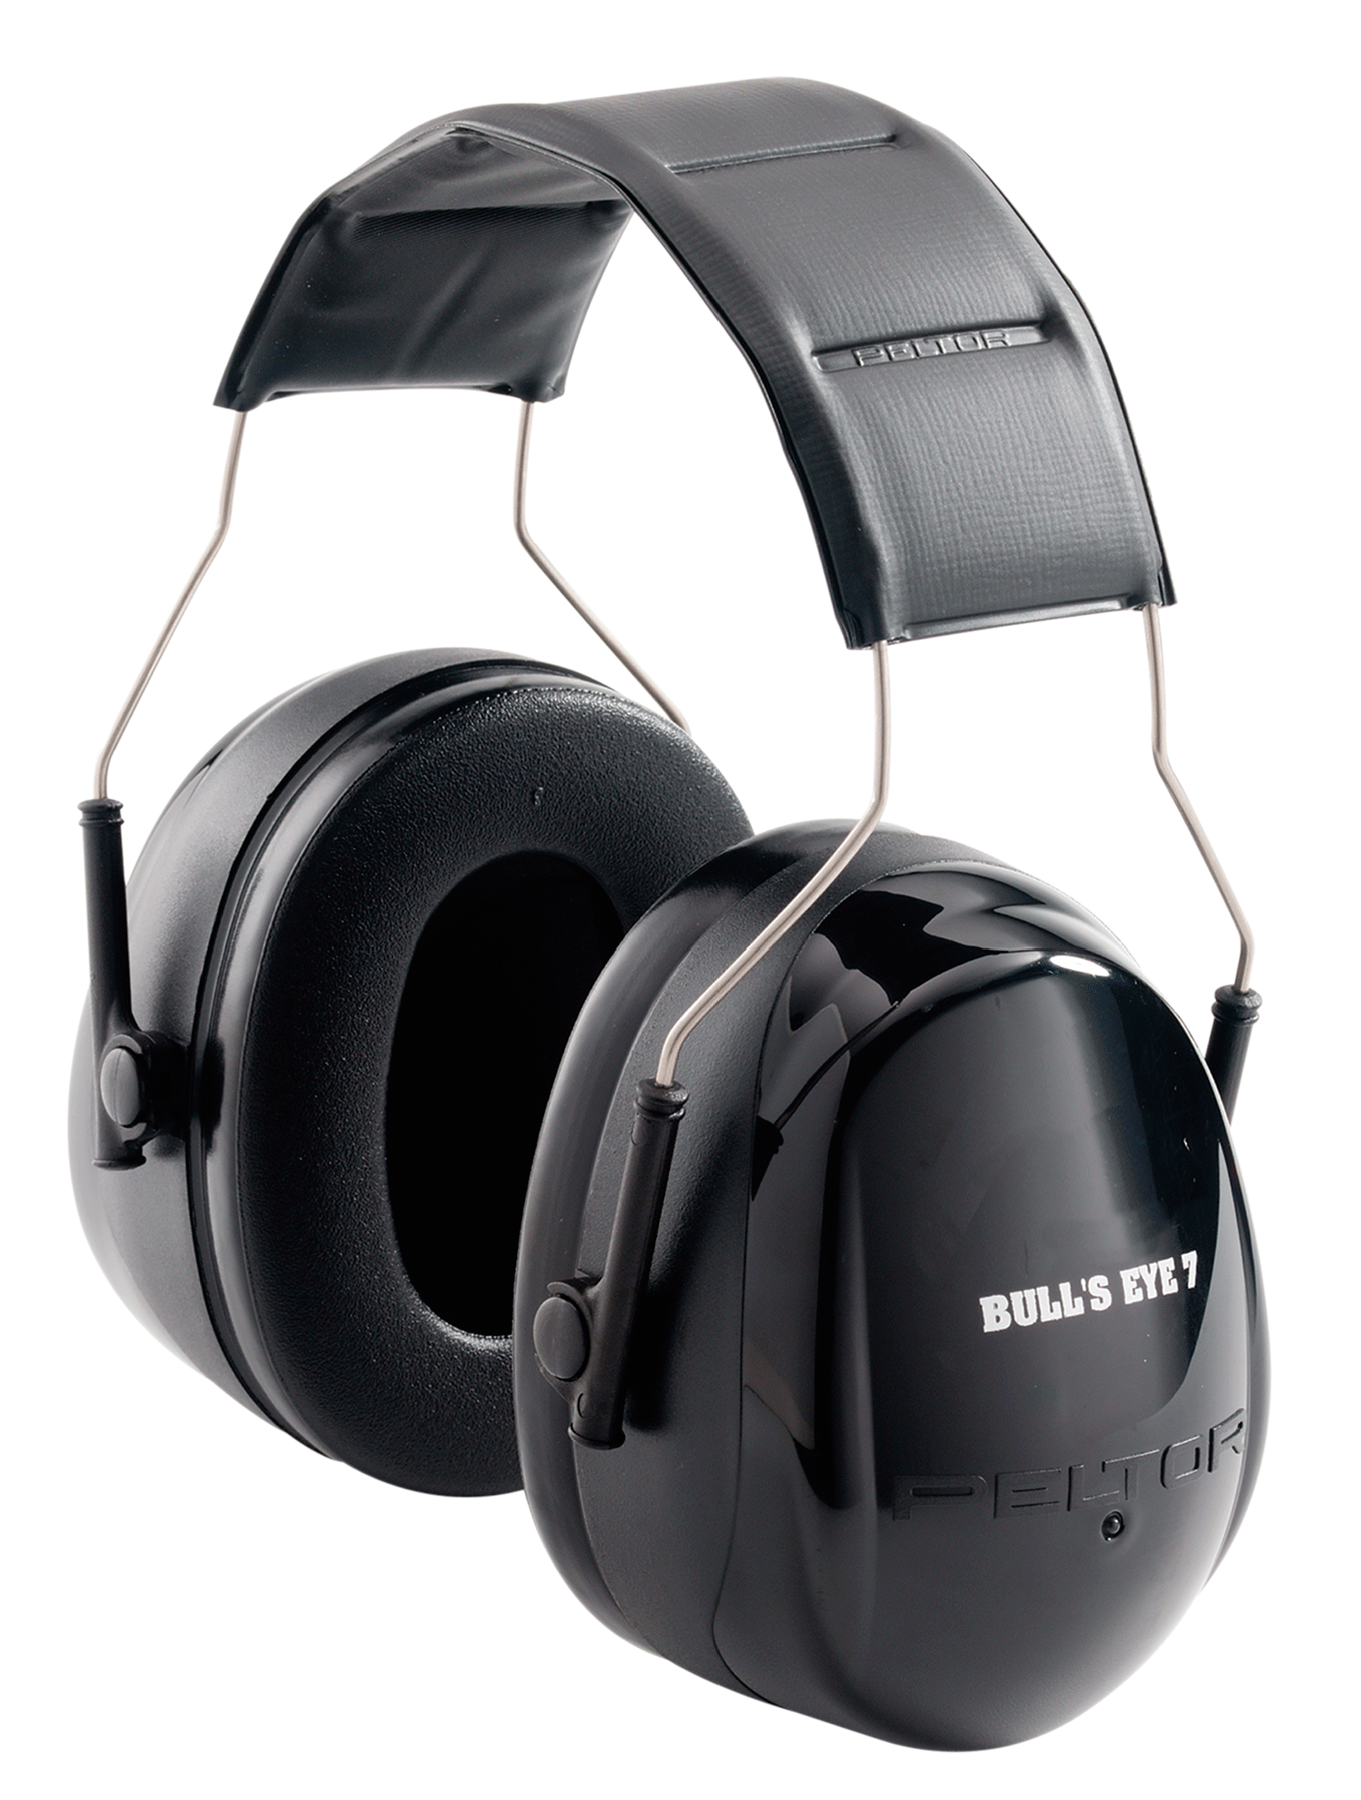 3M Peltor 97006 Bullseye Hearing Protection NRR 27 Muffs Black